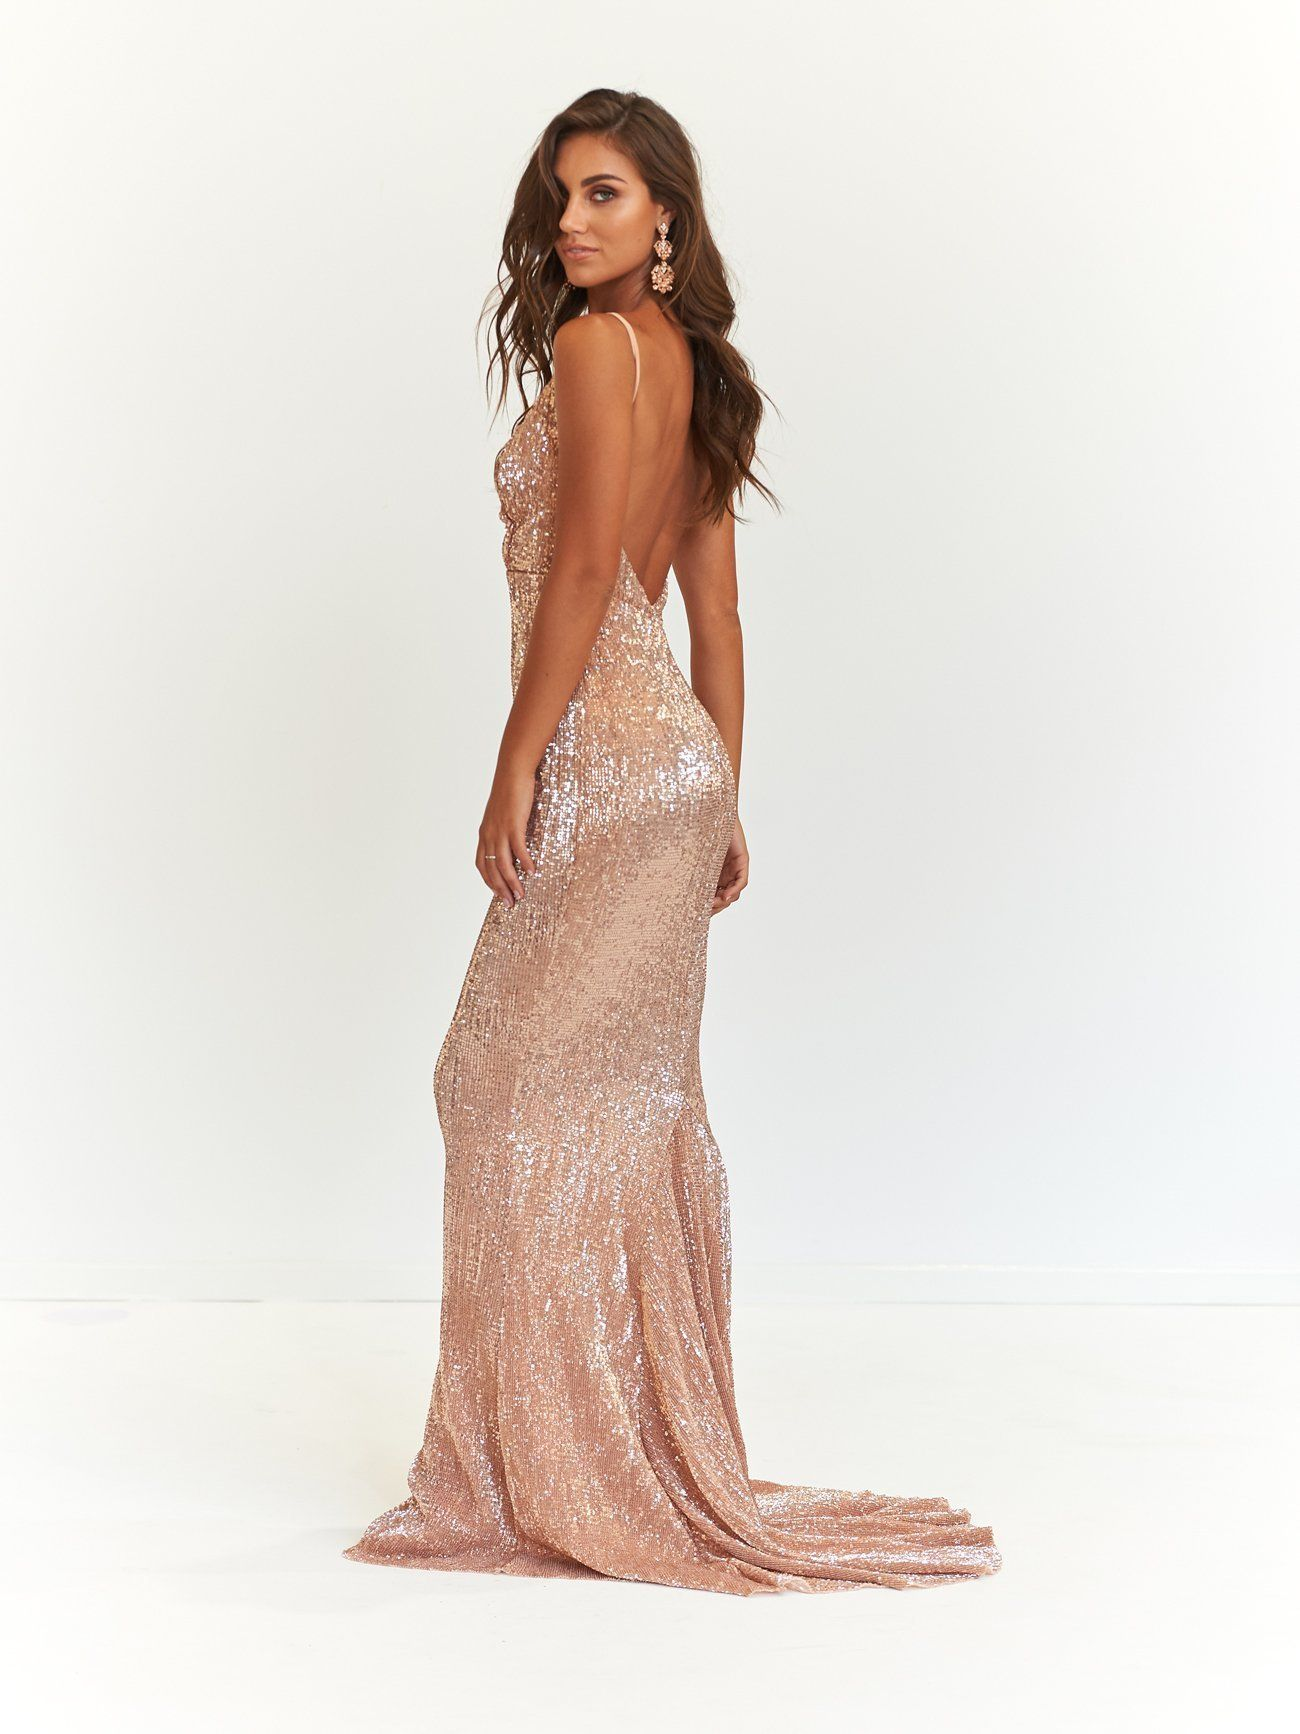 Anofficial A N Cynthia Sparkling Gown Rose Gold Product Page Https Anofficial Com Collections Backless Pr Backless Dress Formal Formal Evening Wear Gowns [ 1734 x 1300 Pixel ]